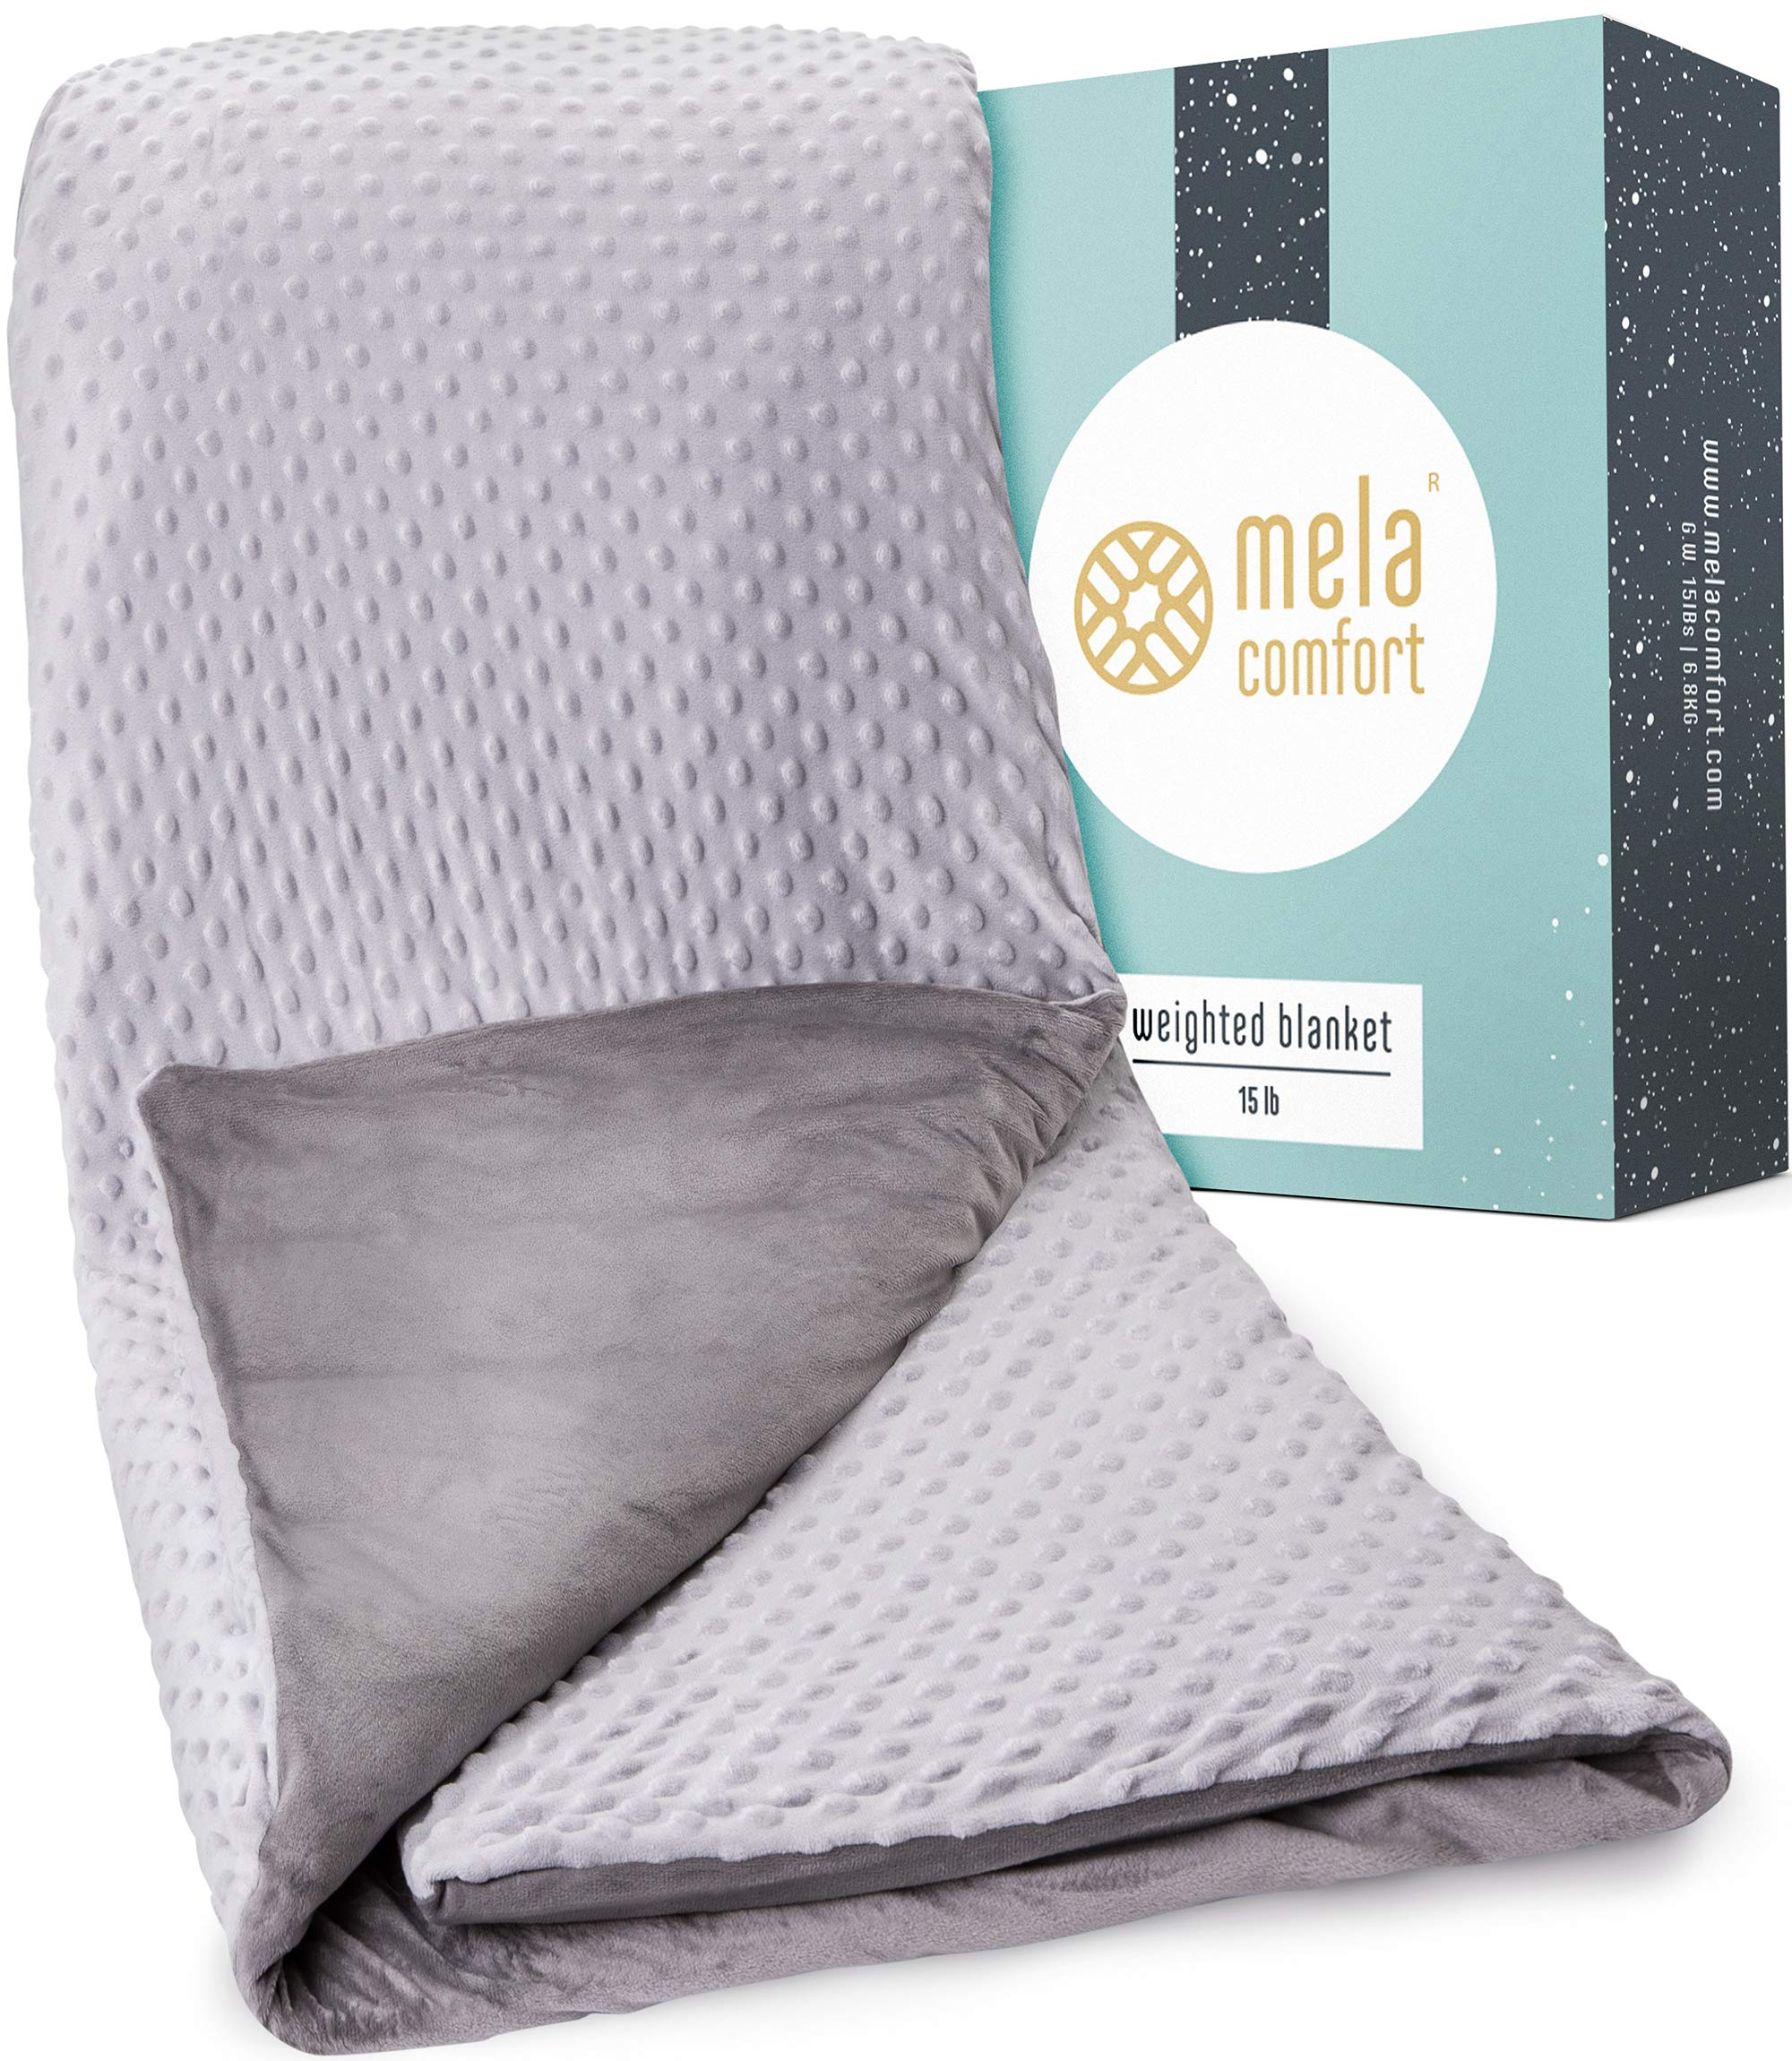 Multi-Relief Weighted Blanket - 100 Night Risk-Free Trial - Supports Healthy Sleep & Can Help Reduce Stress - Includes Premium Super Soft & Washable Cover - 15LBs - Adult Queen Size - Heavy Blanket by Mela Comfort